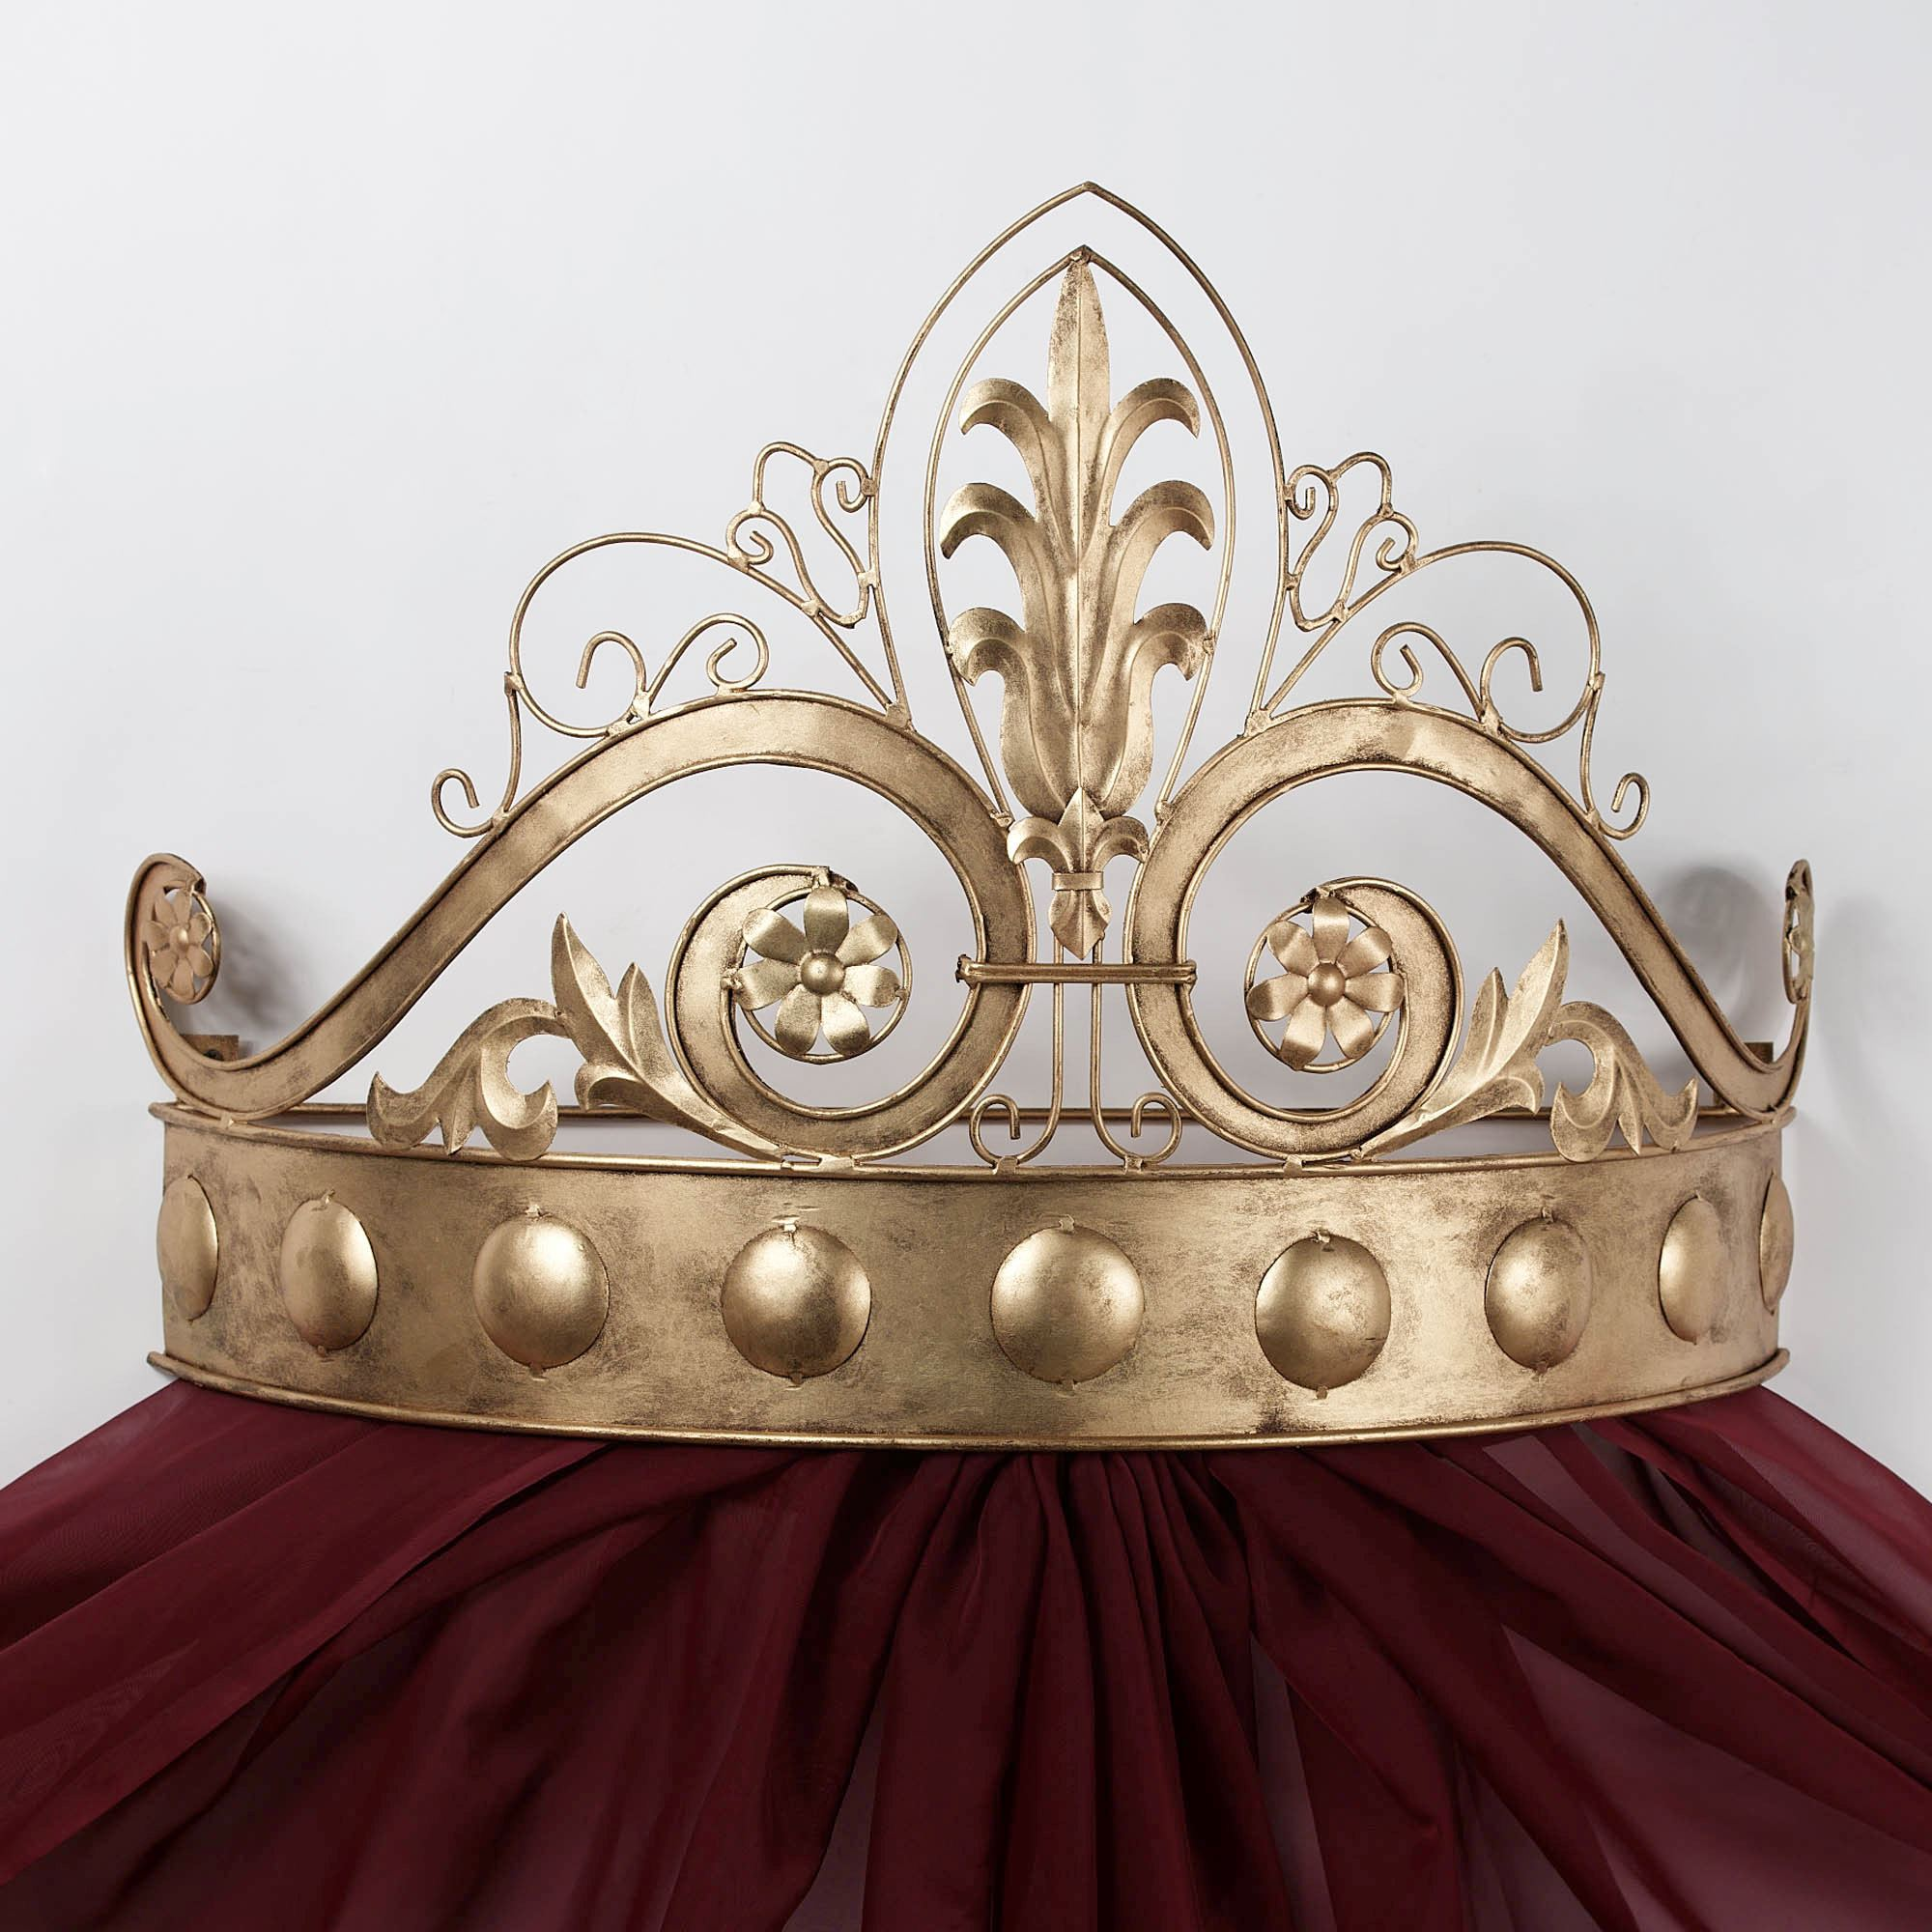 Lamoreaux Wall Teester Bed Crown on Wall Teester Bed Crown  id=87147